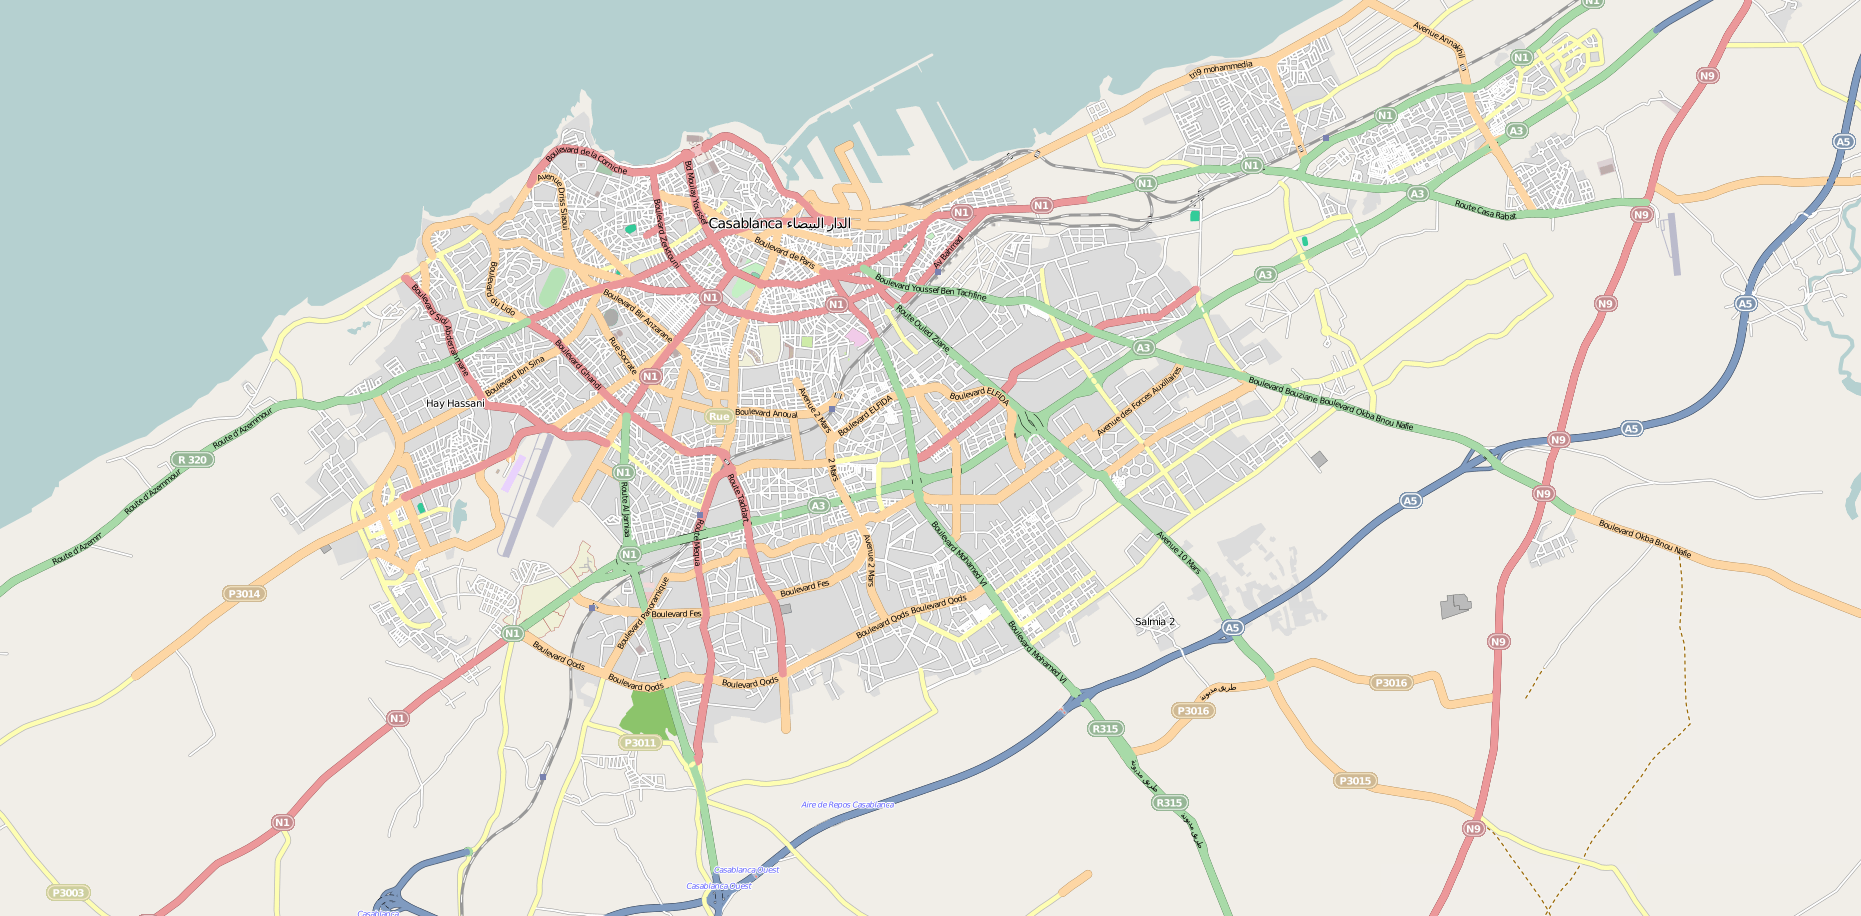 File:Location map Greater Casablanca.png - Wikimedia Commons